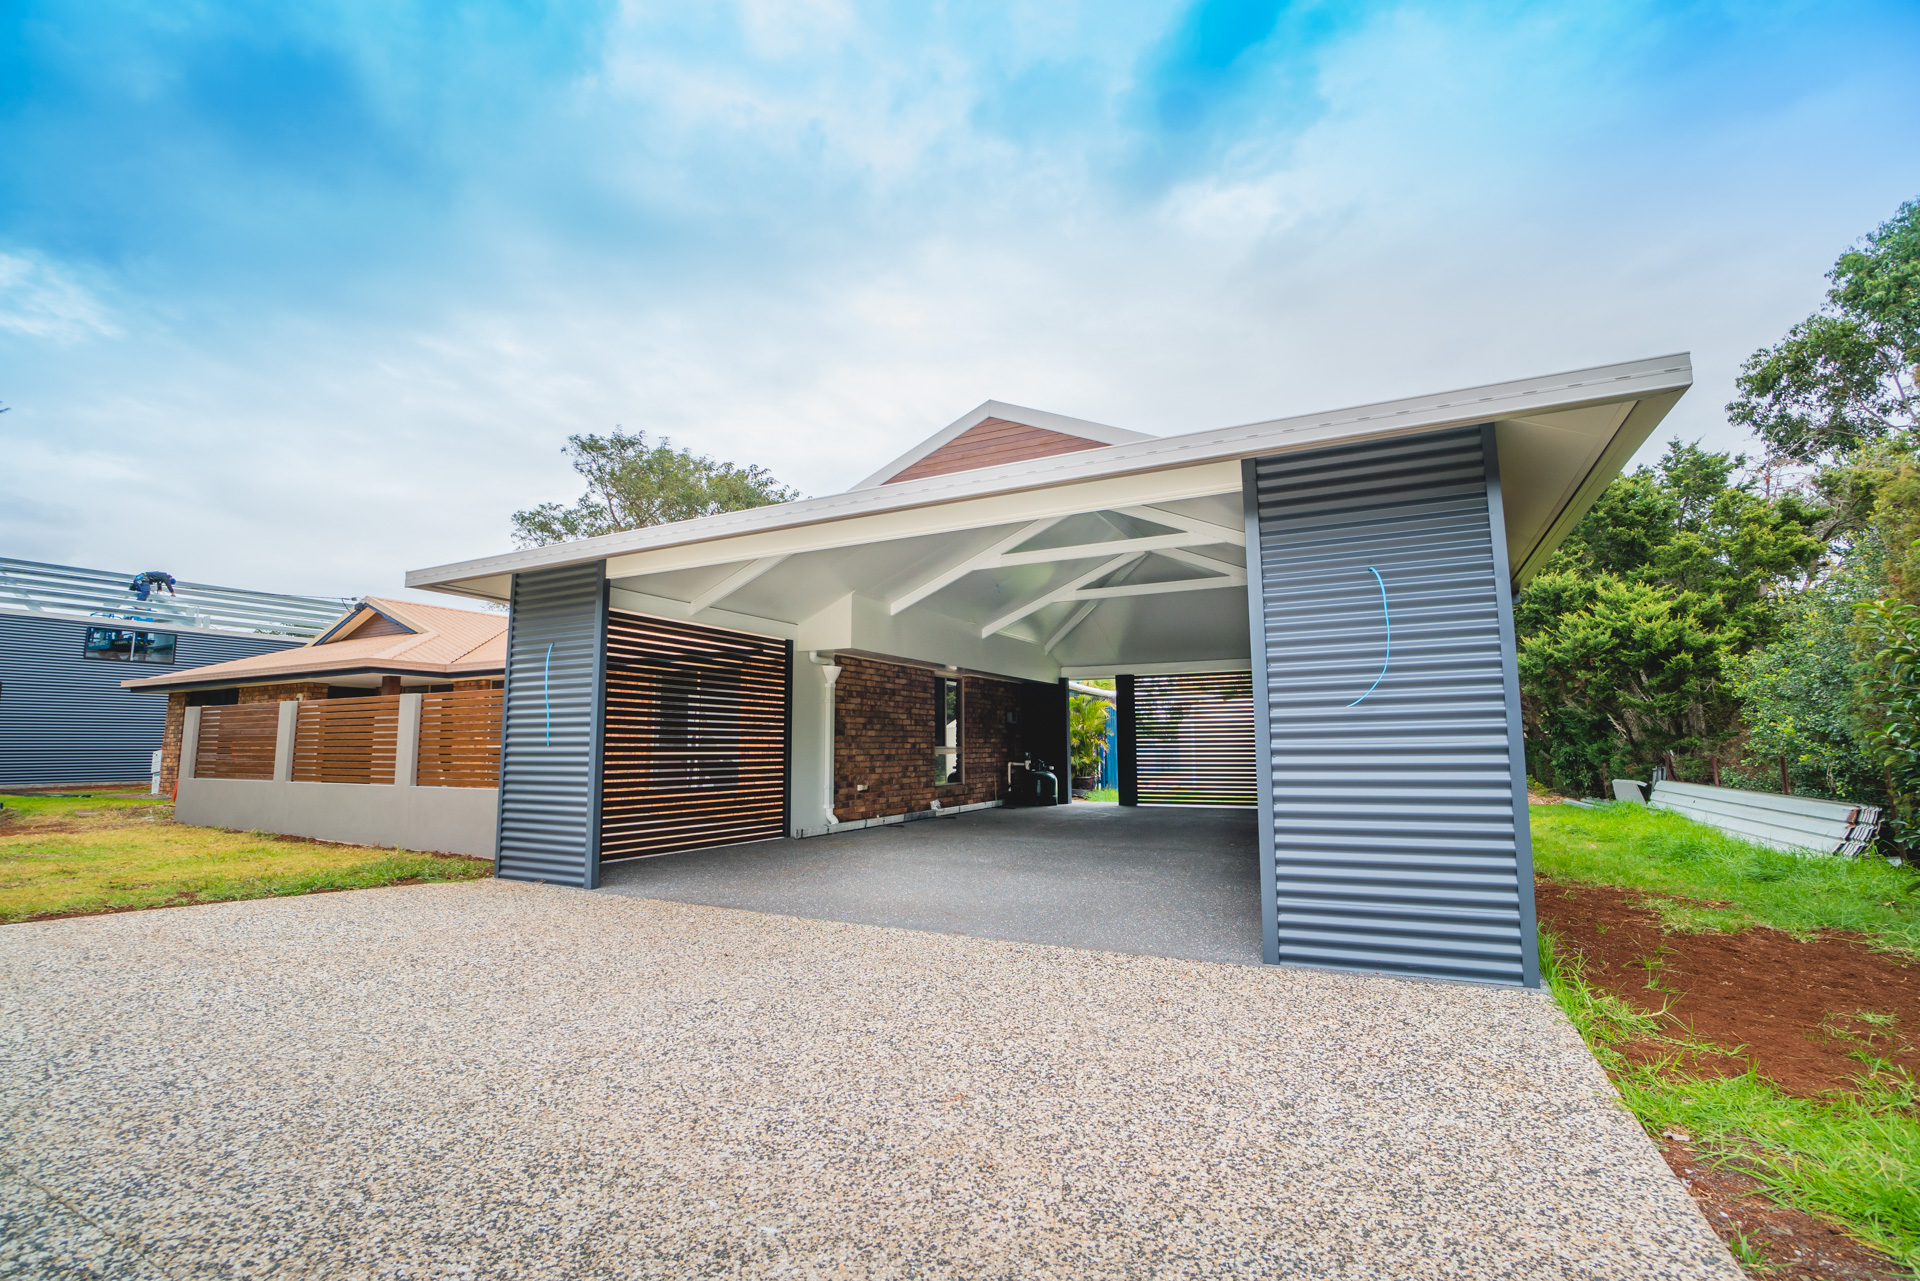 What's It For? - You want the size of the carport to suit what's underneath. Are we covering a car, a boat, a caravan, a prime-mover? This is a good starting point when thinking about design.